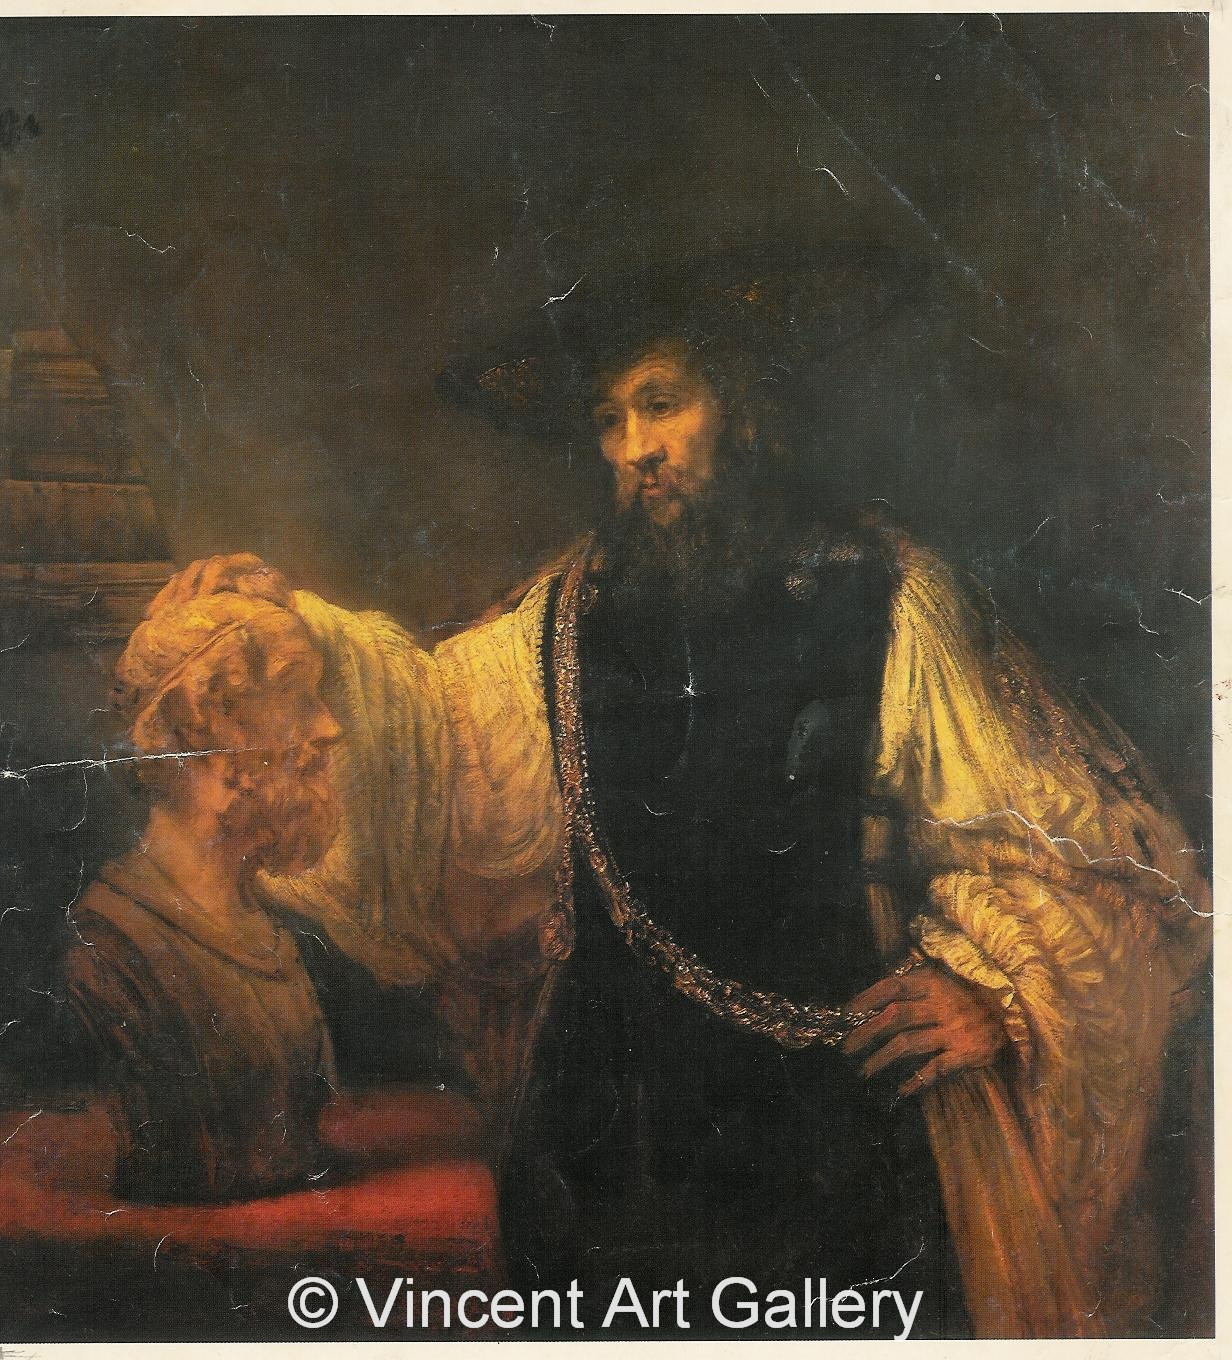 A577, REMBRANDT, Aristotle contemplating a Bust of Homer